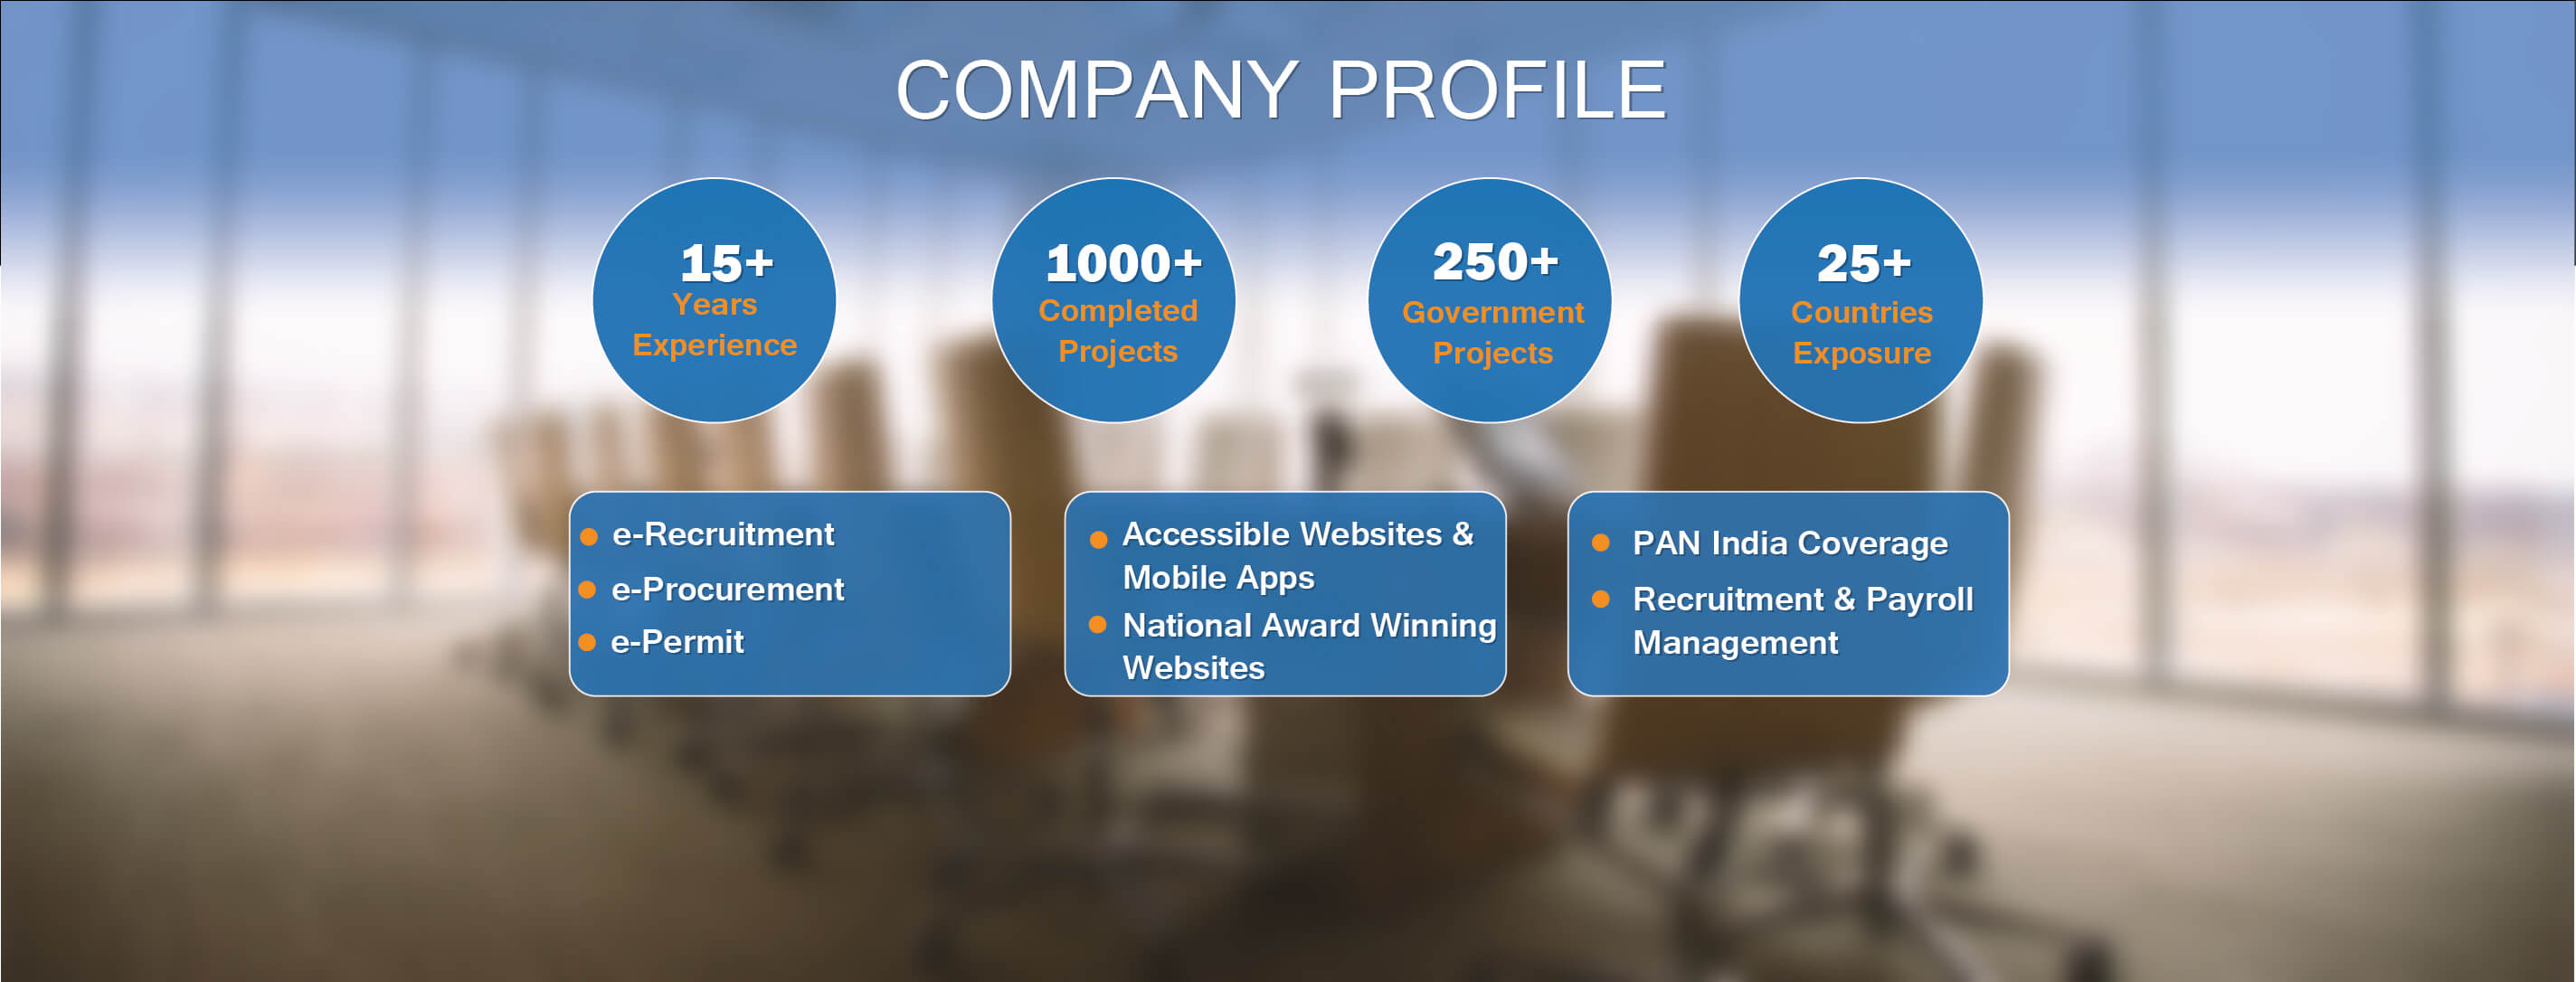 NetCreativeMind Solutions Company Profile